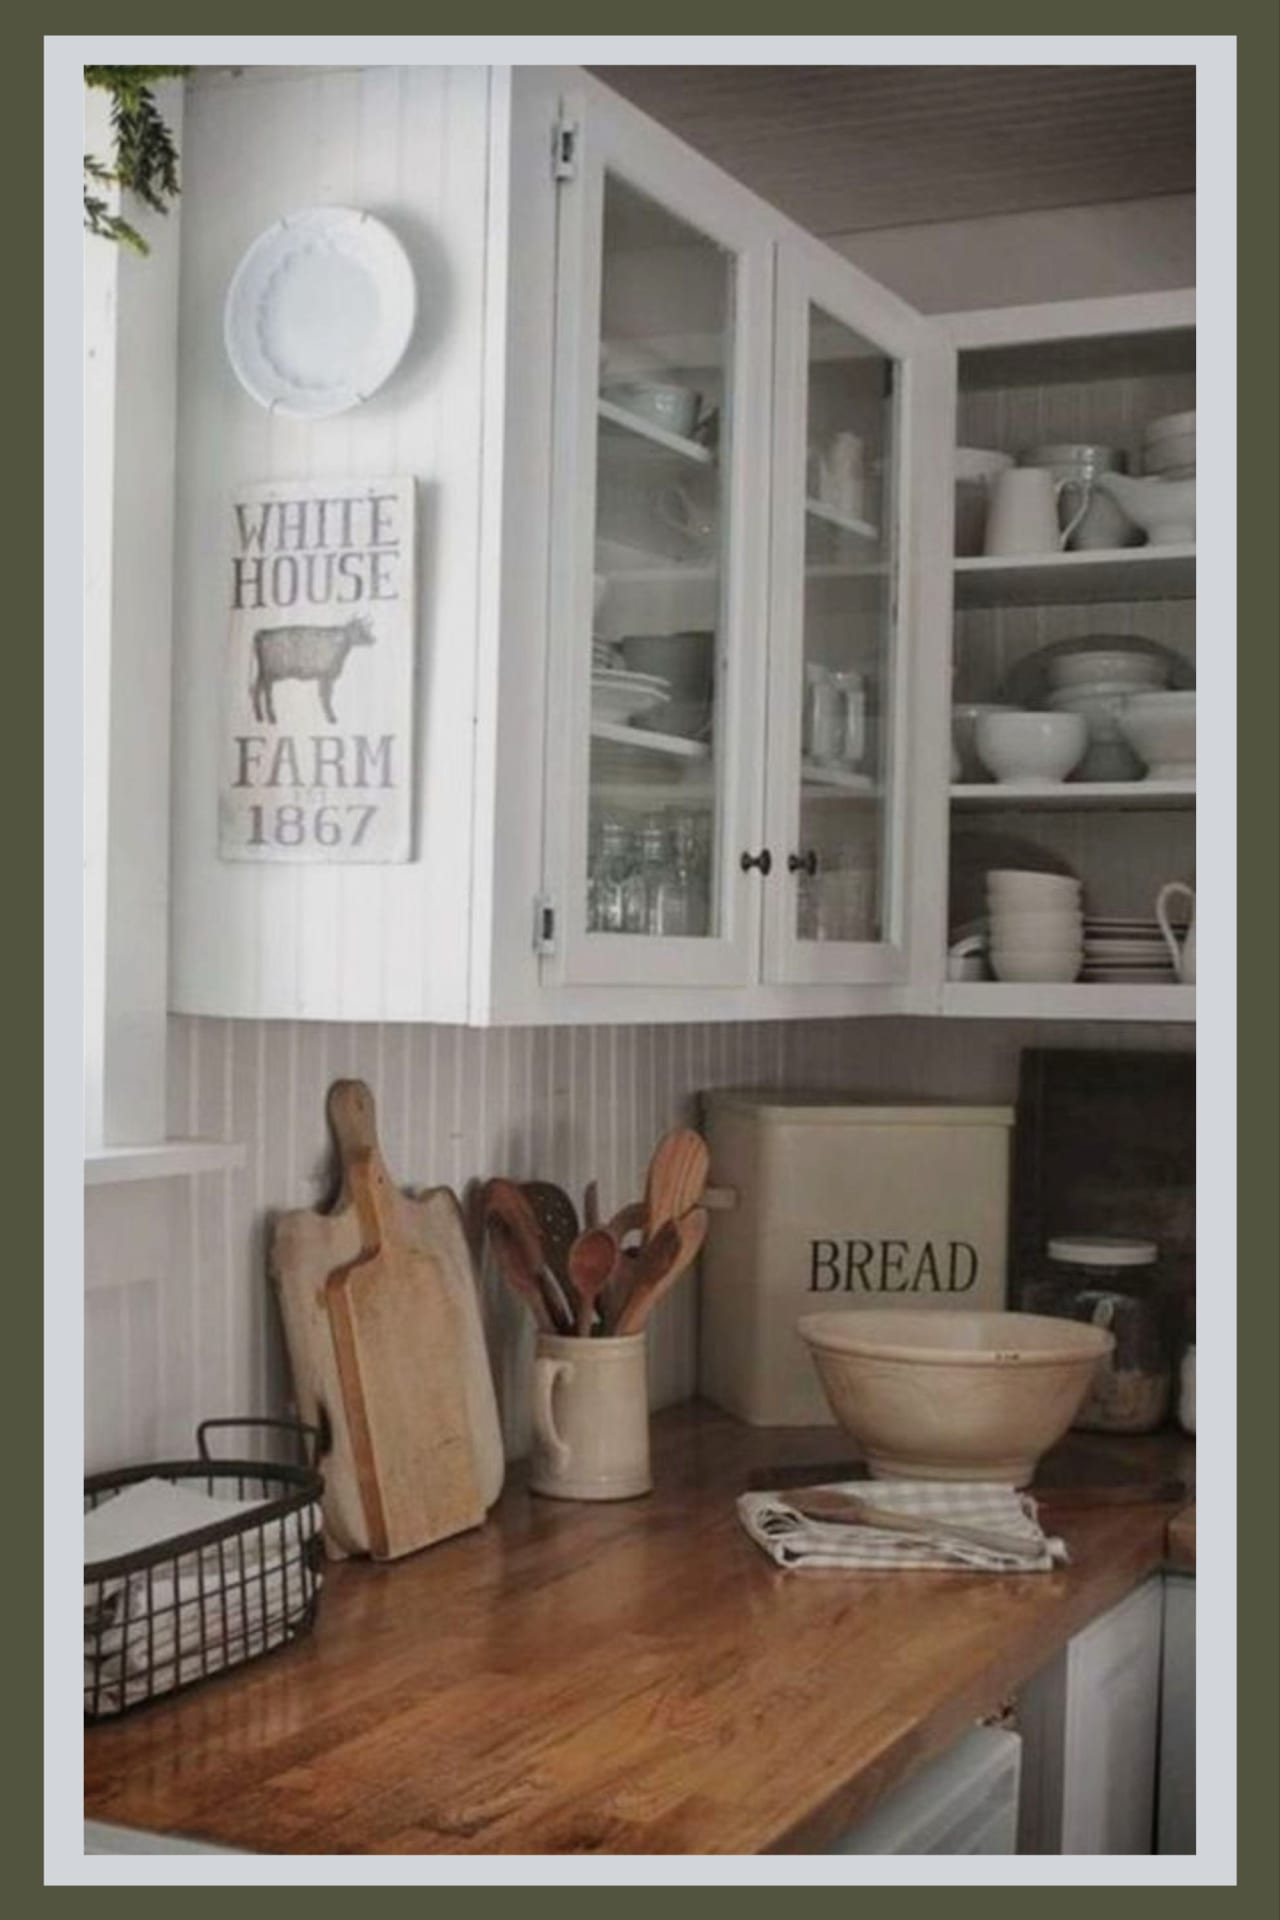 Farmhouse kitchen decorating ideas - country farmhouse kitchen canisters and decor idea - farmhouse canisters we love!